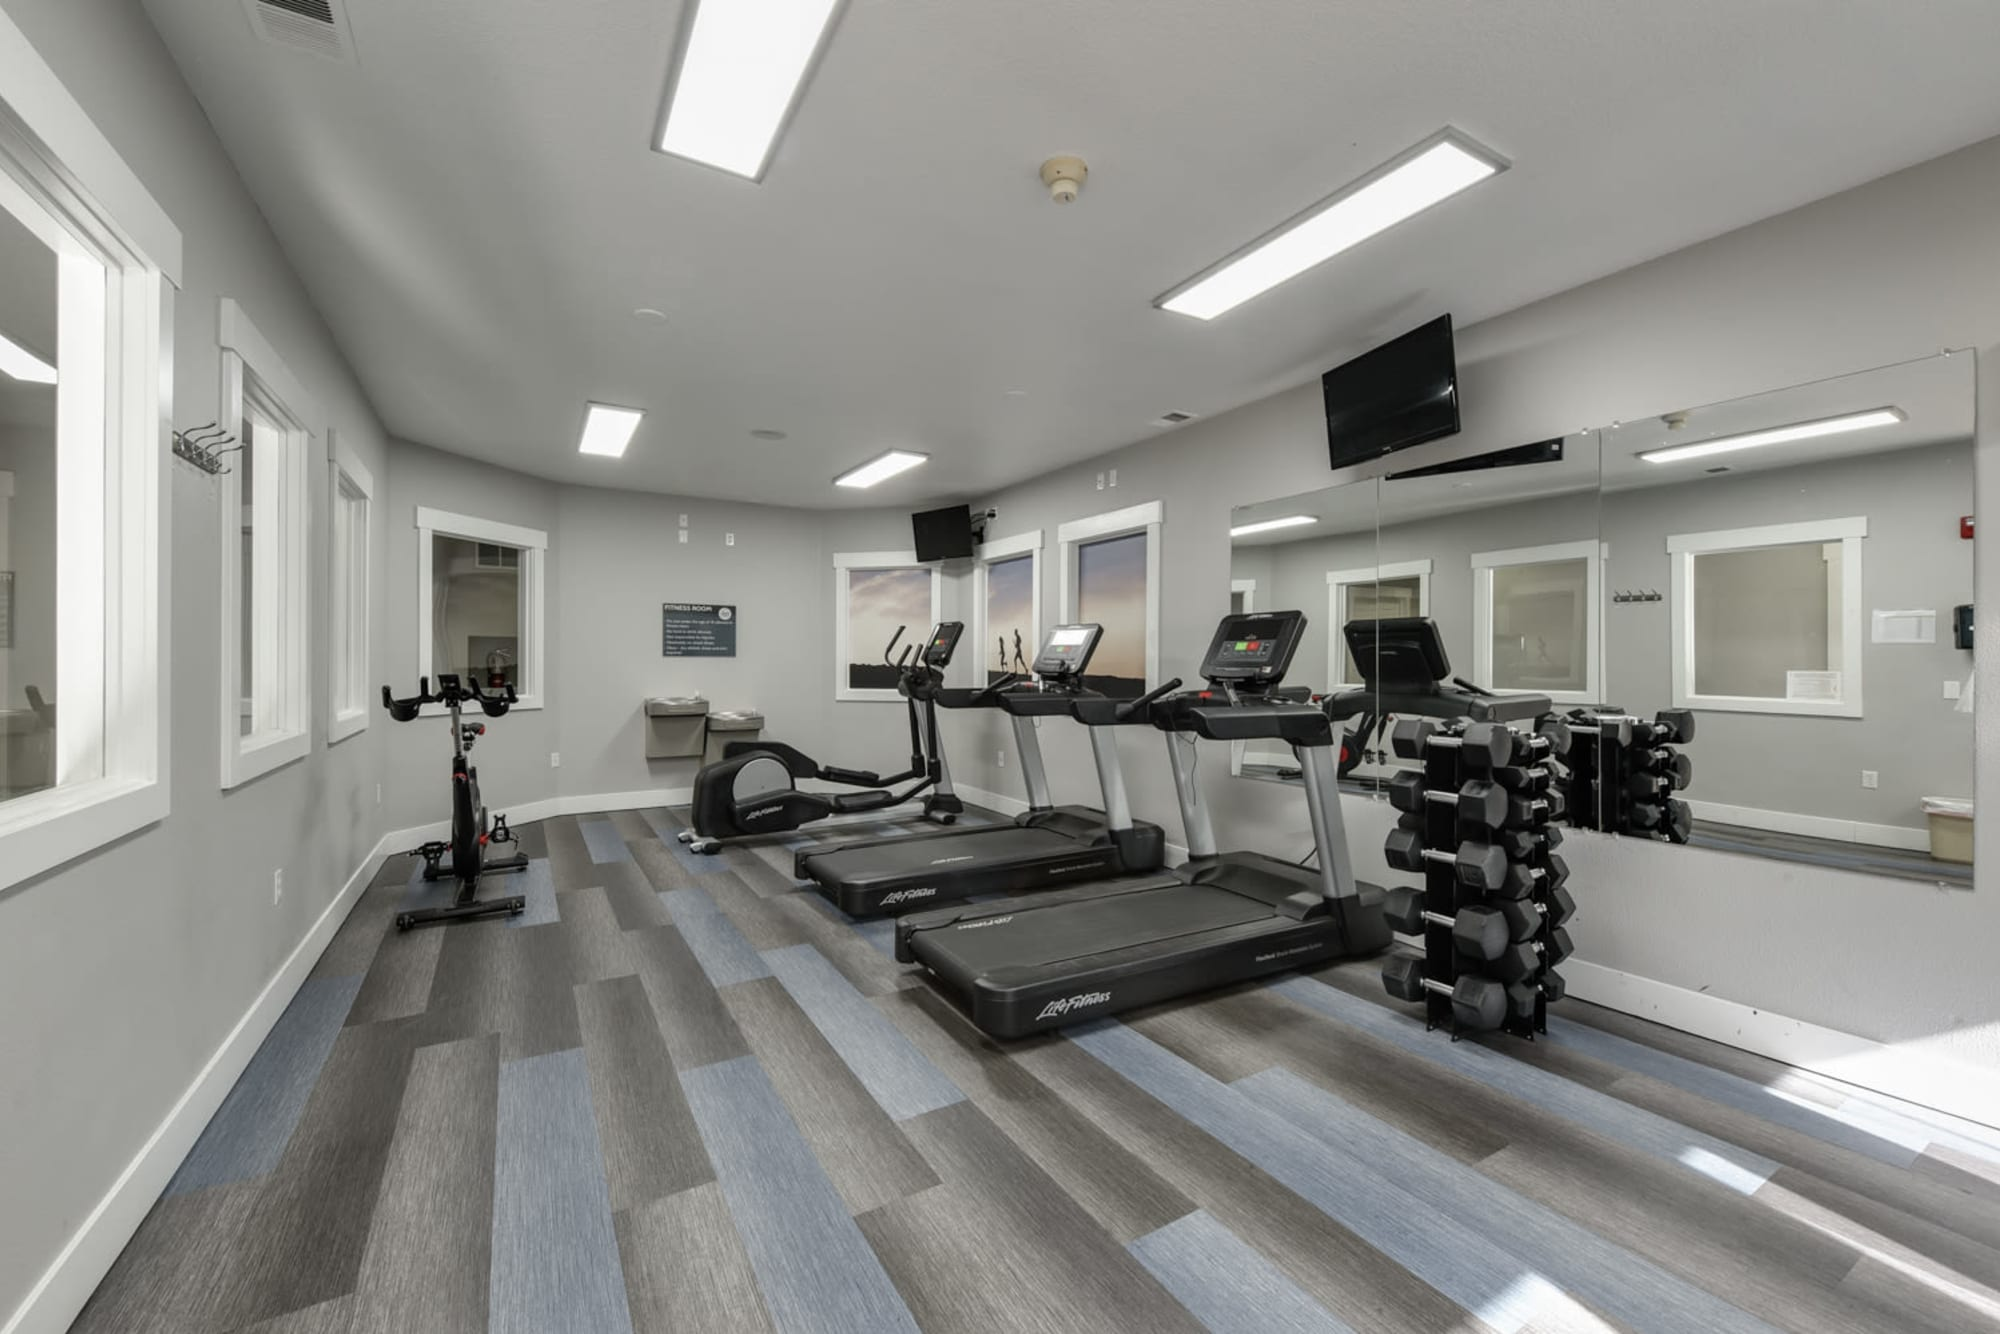 Newly renovated fitness center with treadmills The Landings at Morrison Apartments in Gresham, Oregon